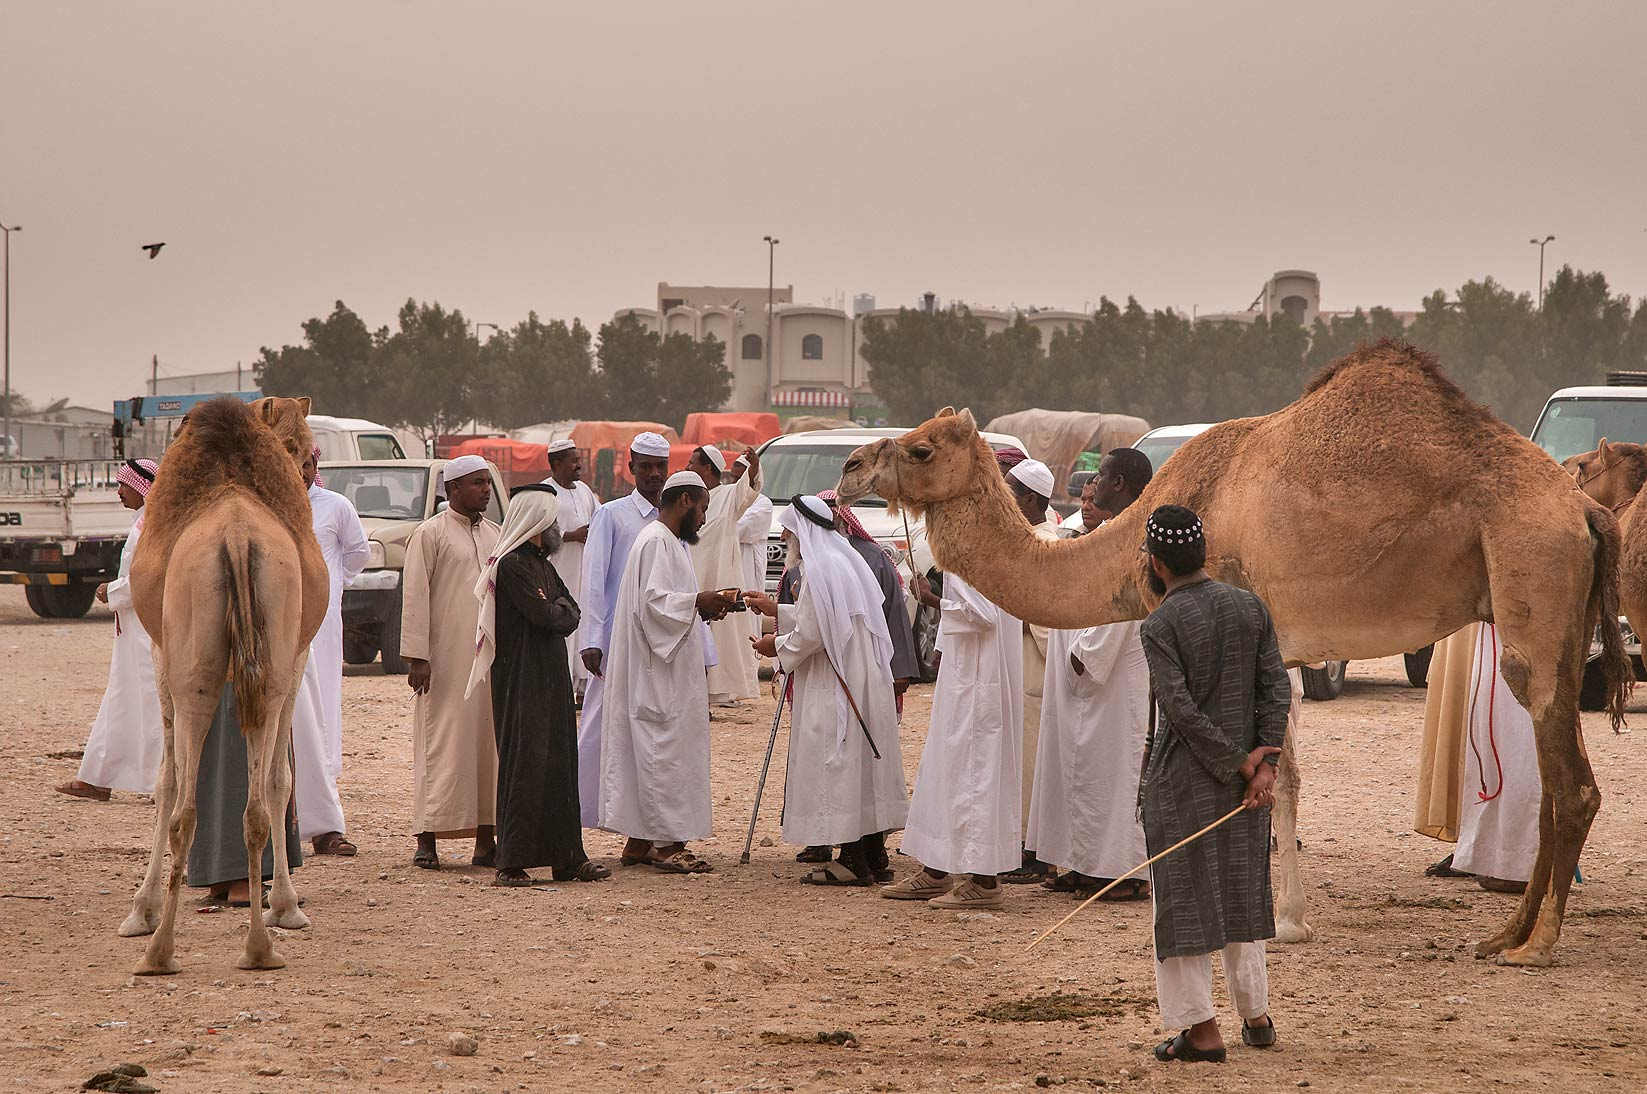 Buying a camel in livestock markets, Abu Hamour area. Doha, Qatar